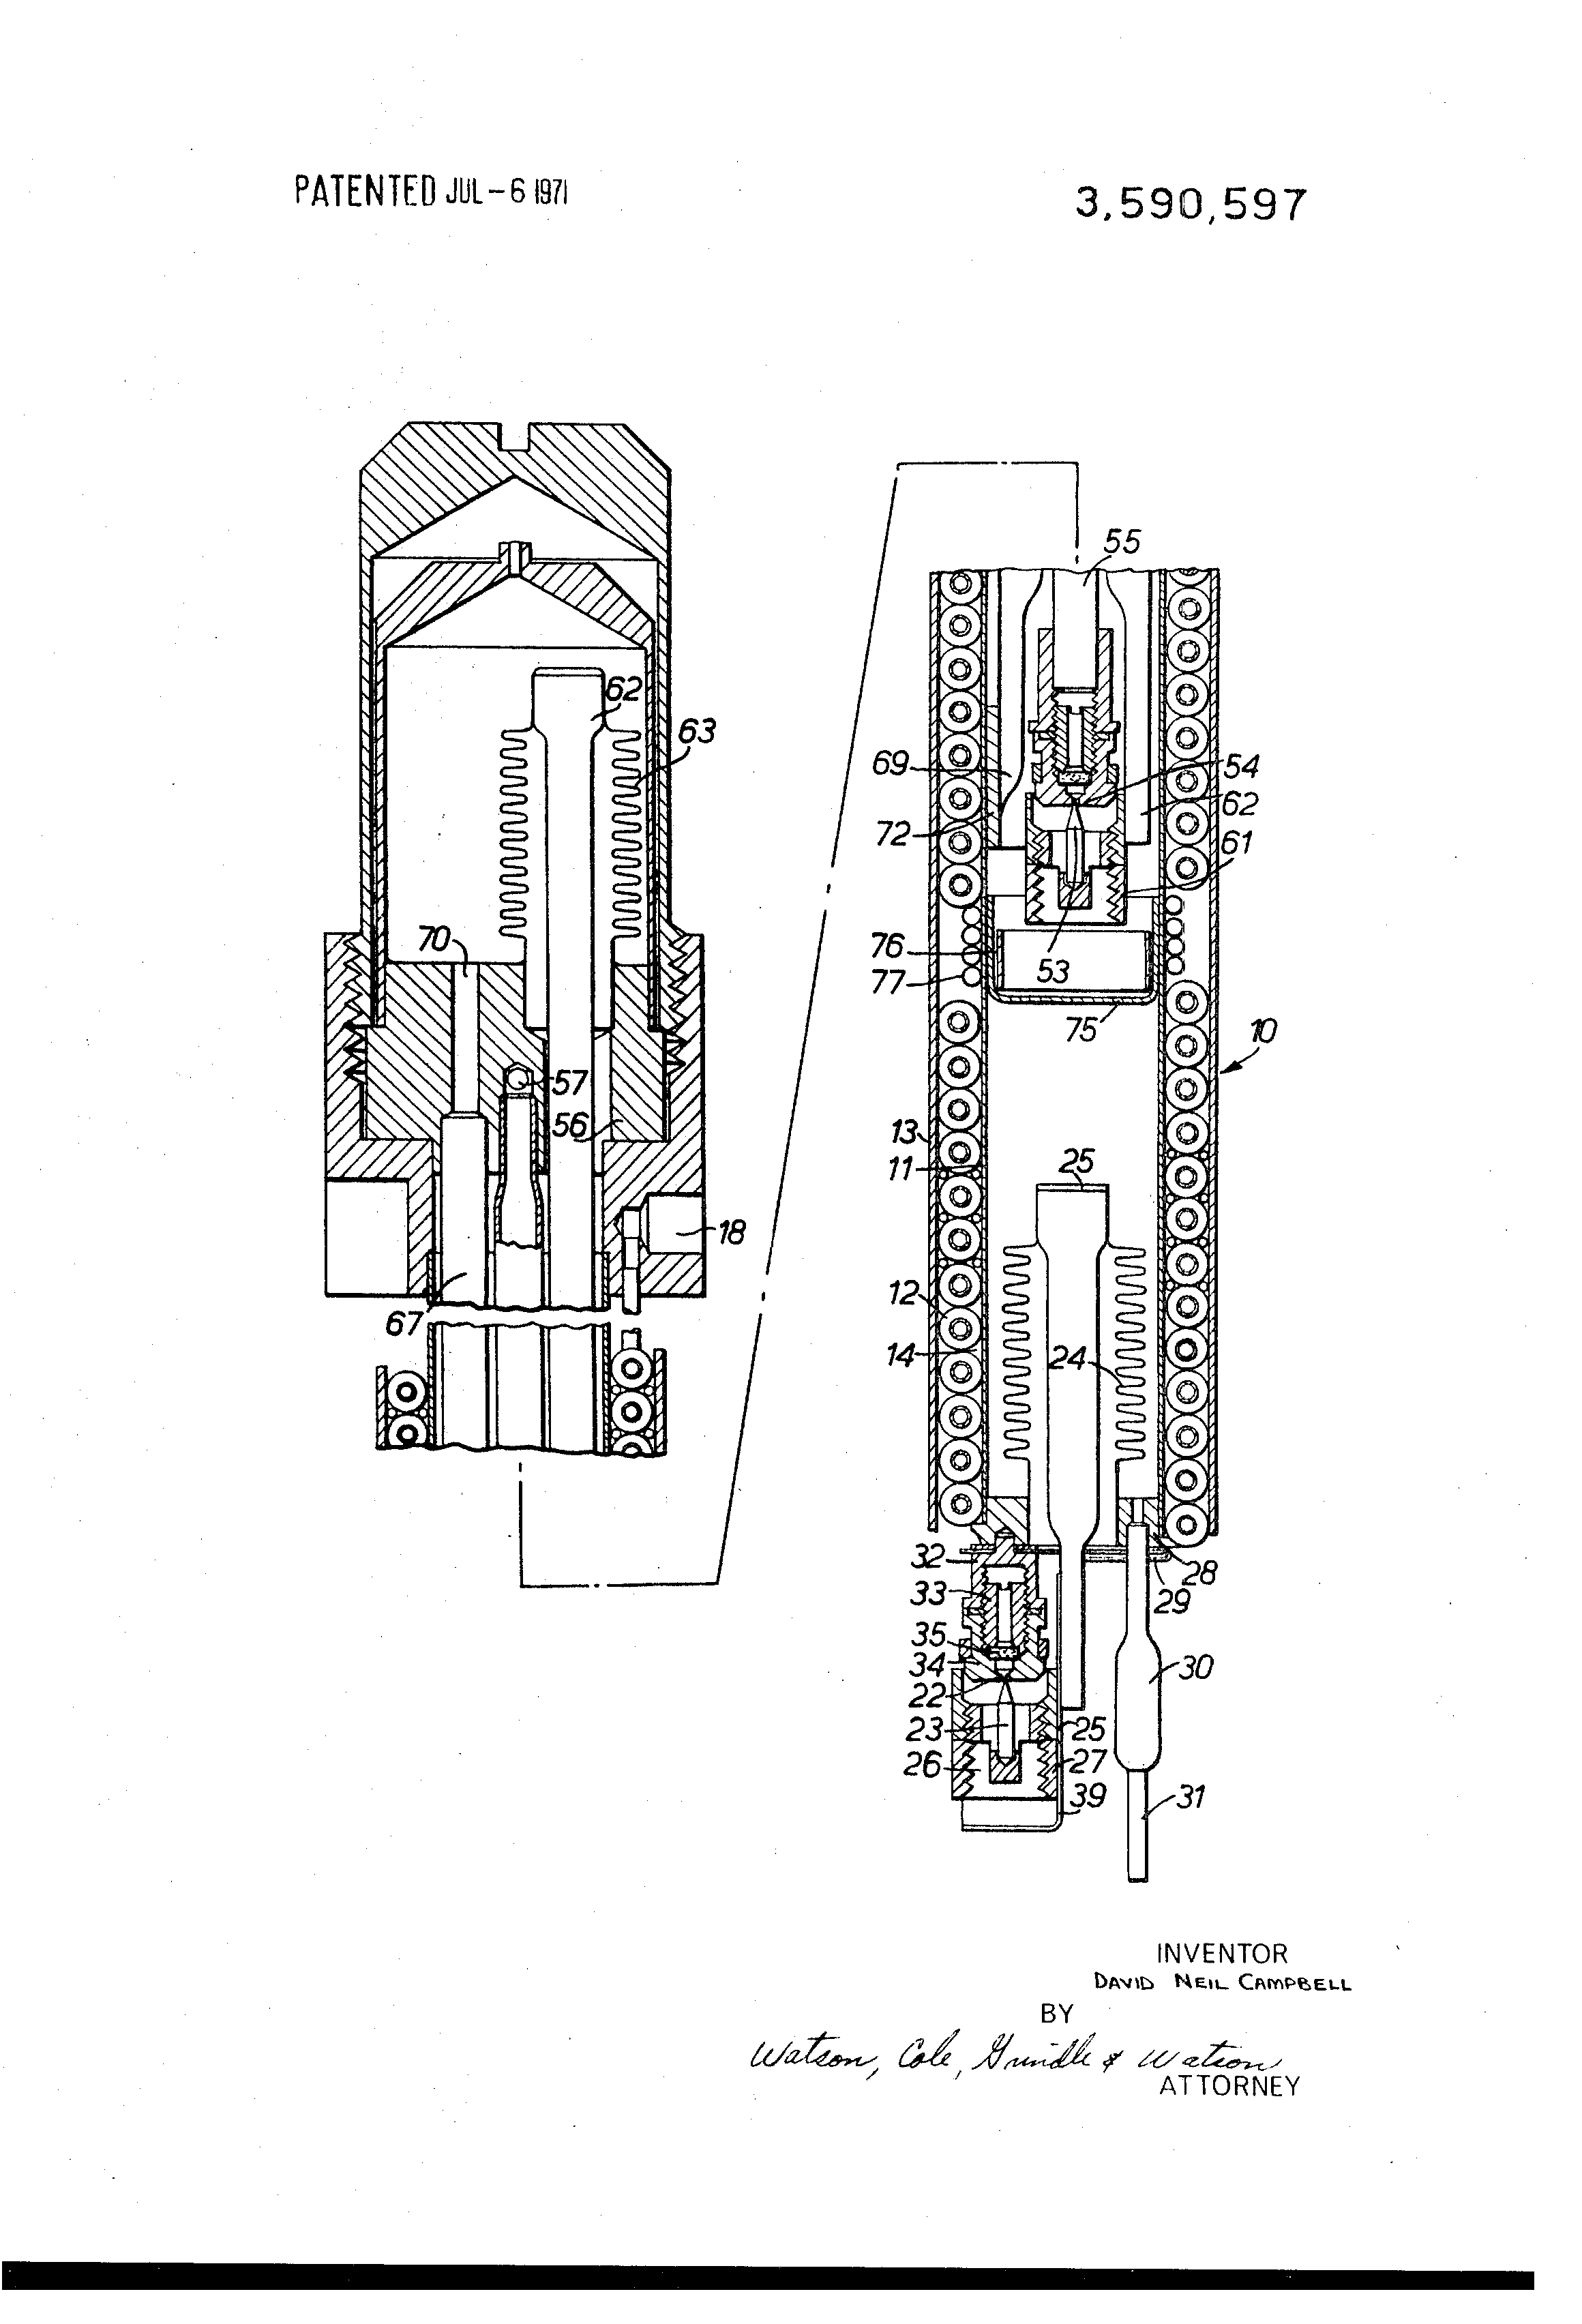 Brevet US3590597 - Cooling apparatus employing the joule